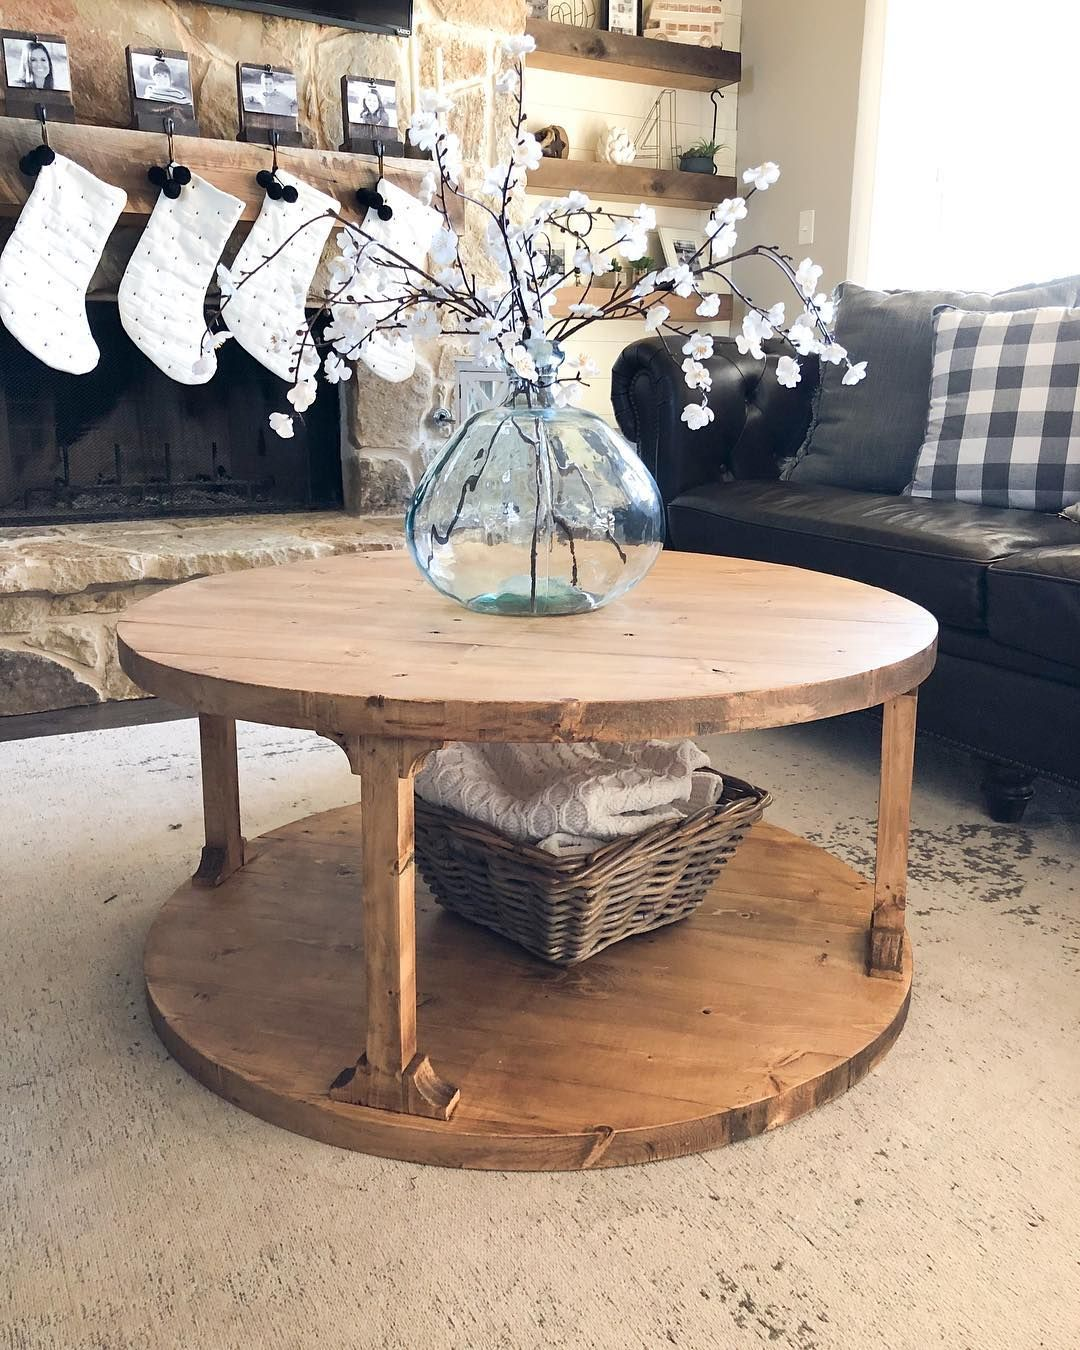 7 2x6 Boards Is All You Need To Build This 39 Round Coffee Table Free Plans And How With Images Round Coffee Table Living Room Coffee Table Farmhouse Coffee Table Plans [ 1350 x 1080 Pixel ]